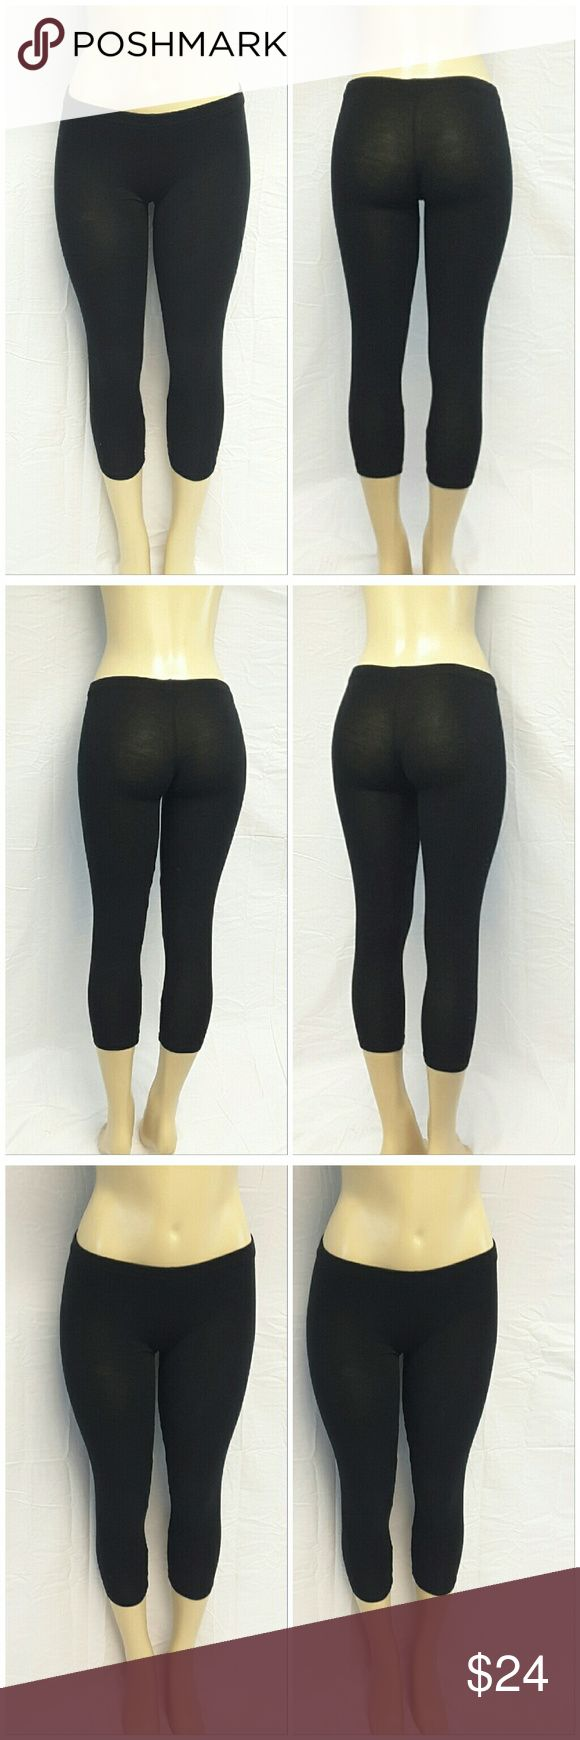 "40% BUNDLE DISCOUNT! FREE SHIPPING ON BUNDLES!! TOPSHOP Leggings, size 4 See Measurements, elastic waistband, soft super stretchy body hugging lightweight material, machine washable, cotton spandex blend, approximate measurements: Stretchy 13"" waist laying flat but stretches to 15"" comfortably, 26"" inseam, 6"" rise.   ADD TO A BUNDLE!?? 40% BUNDLE DISCOUNT! FREE SHIPPING ON BUNDLES!! ?OFFER? 40% less Plus $6 LESS ON BUNDLES! Topshop Pants Leggings"